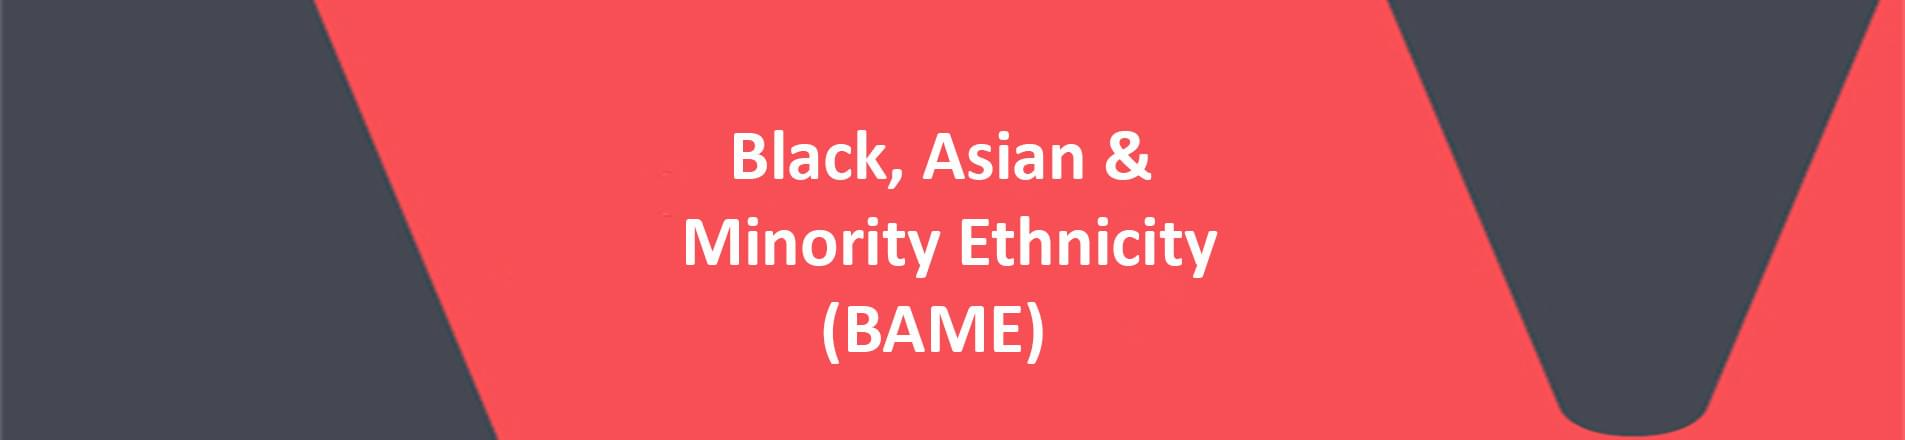 red banner with white text reading black, asian, and minority ethnicity